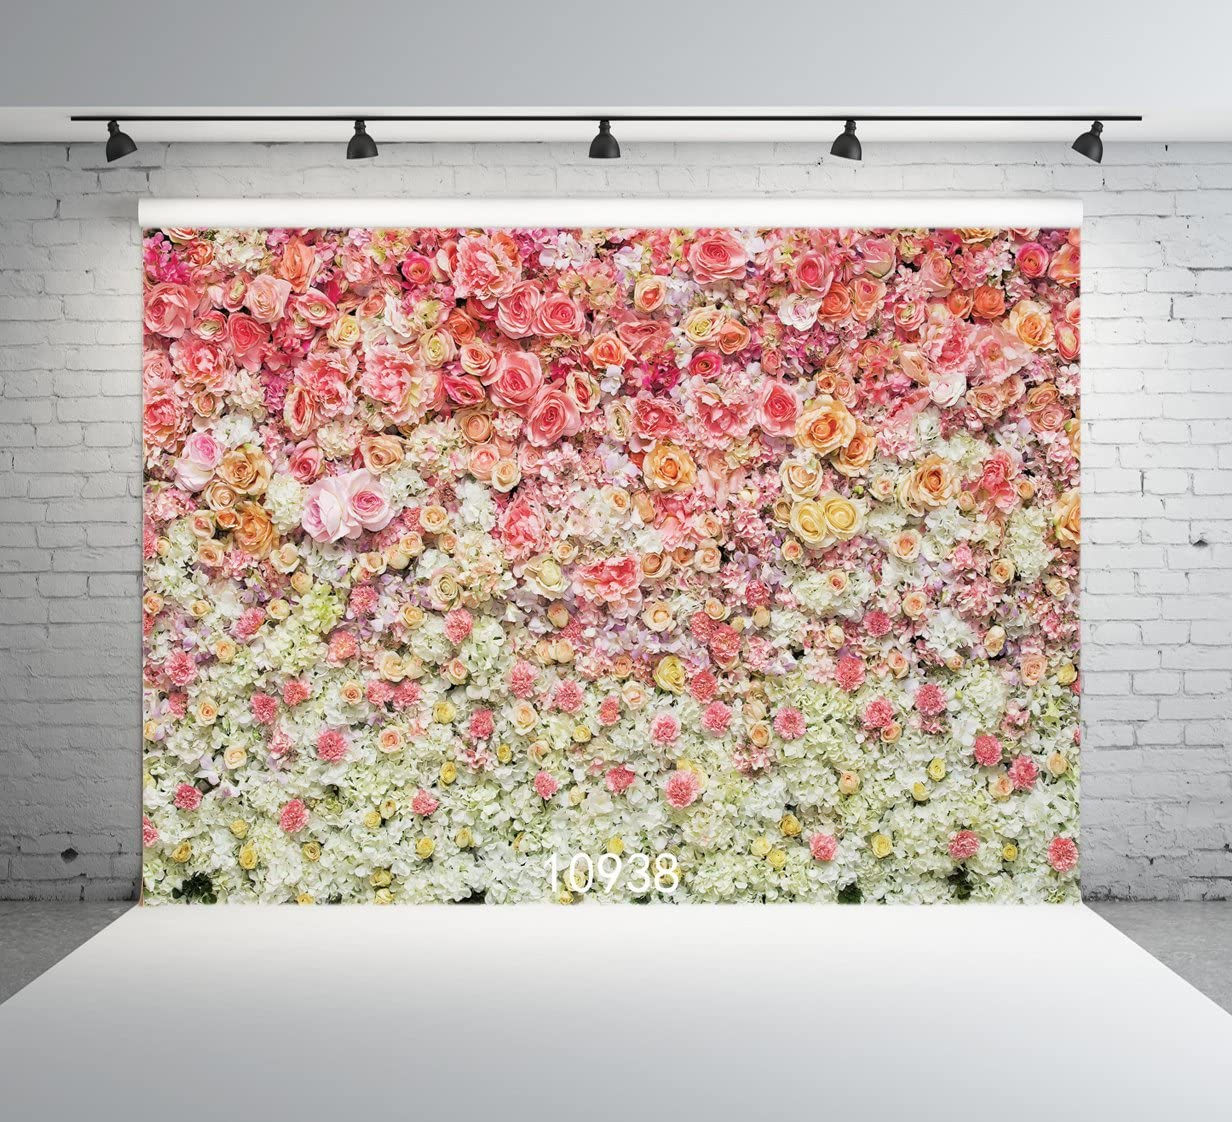 6x6FT Vinyl Wall Photography Backdrop,Floral,Abstract Modern Foliage Background for Baby Shower Bridal Wedding Studio Photography Pictures